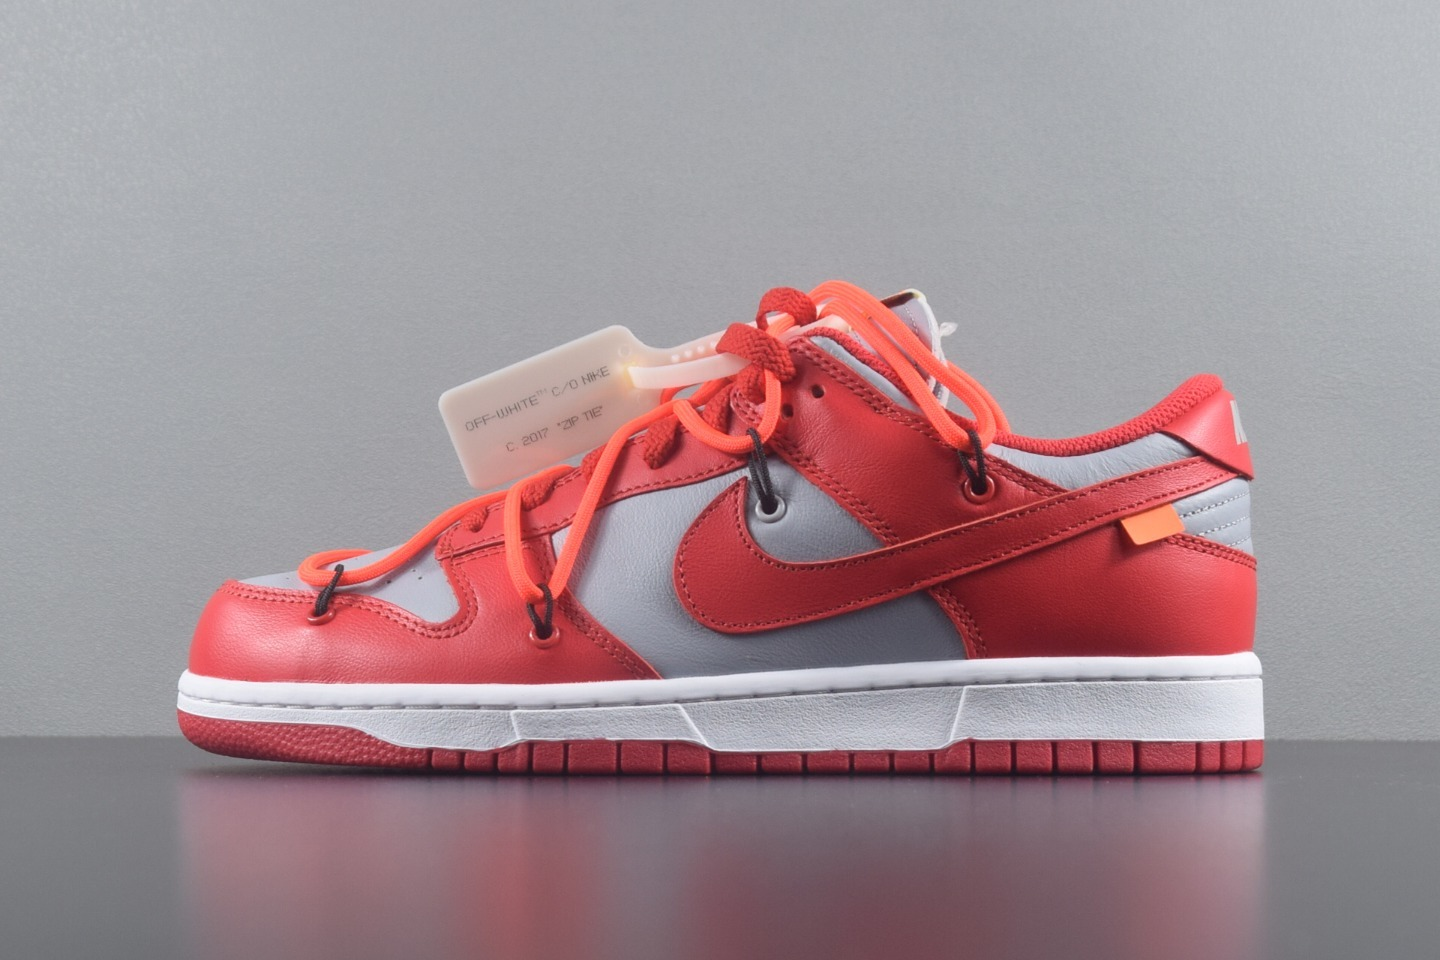 OFF-WHITE X DUNK LOW PINE GREEN OW联名 灰红 CT0856-600_新G5椰子